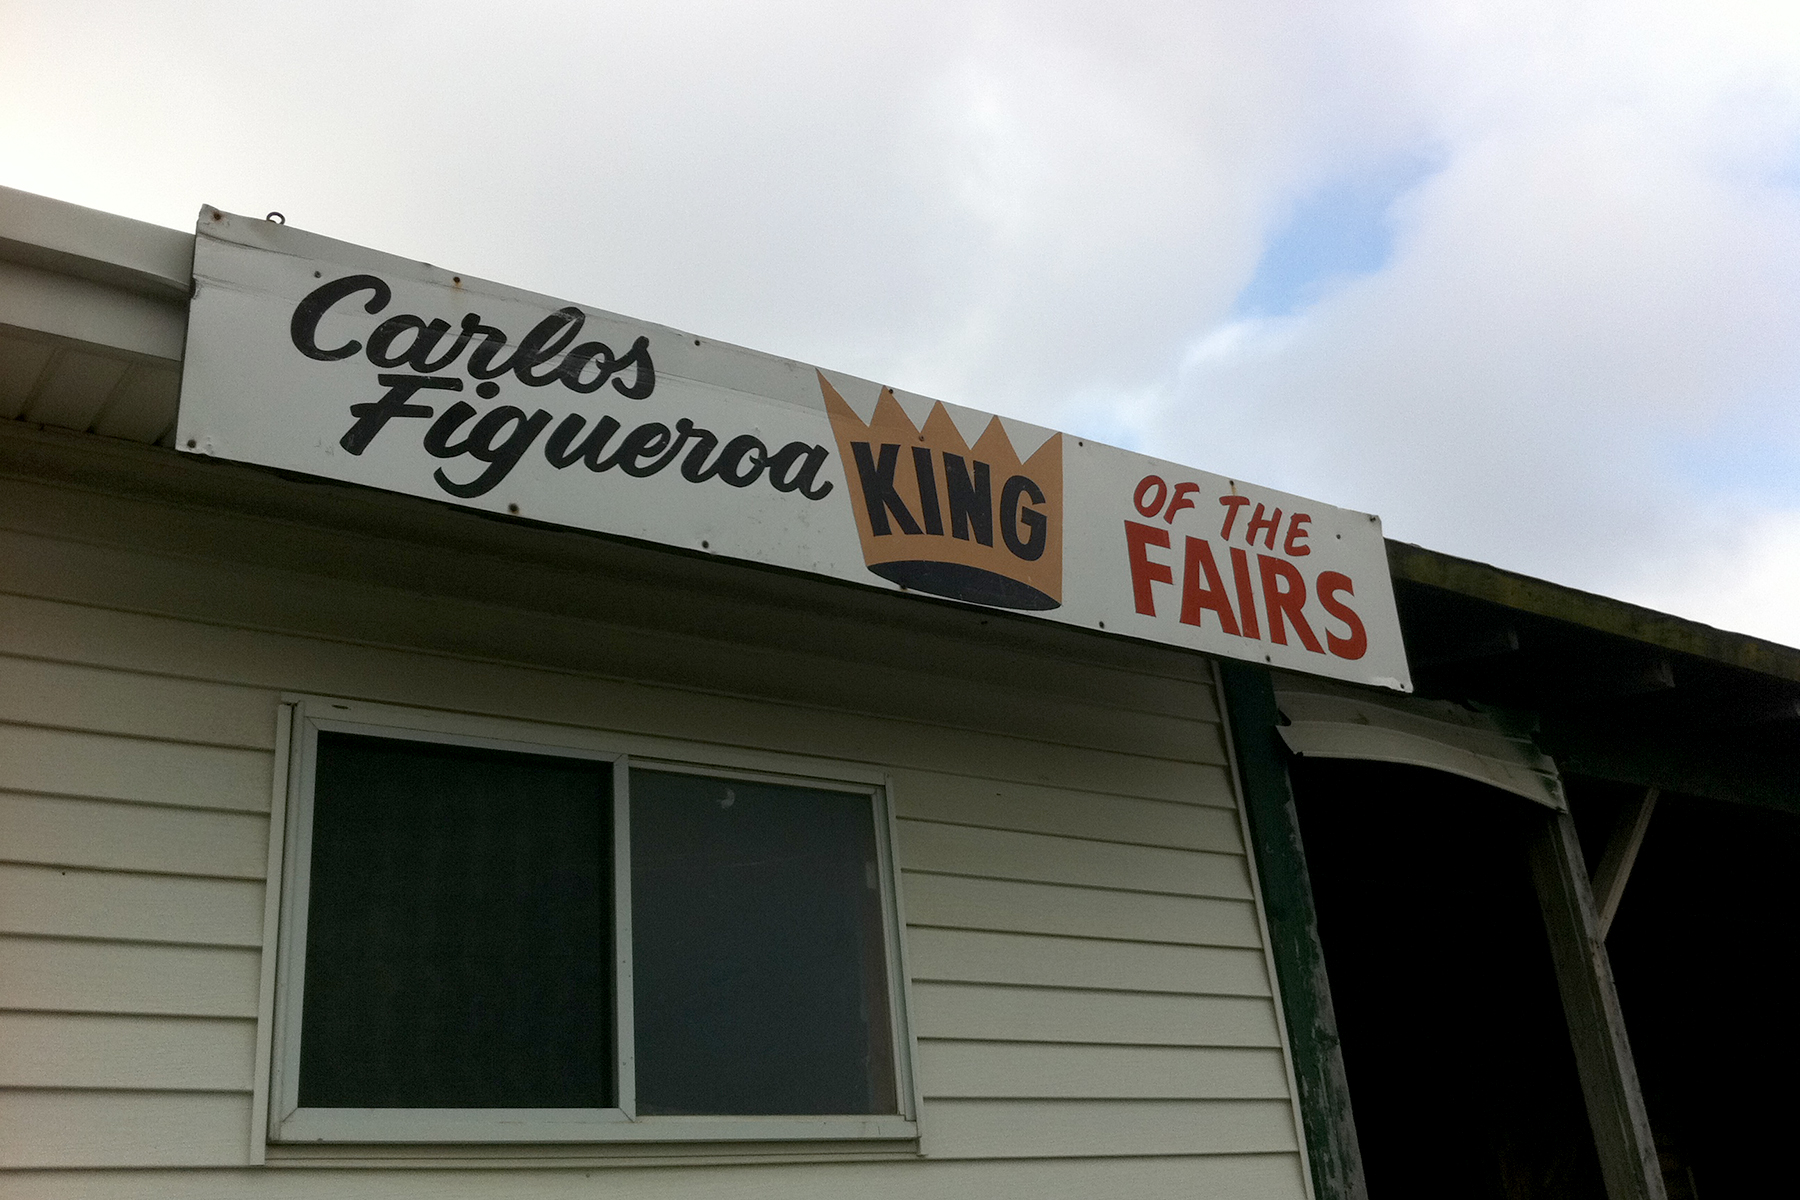 Carlos Figueroa's King of the Fairs sign on his Suffolk Downs barn